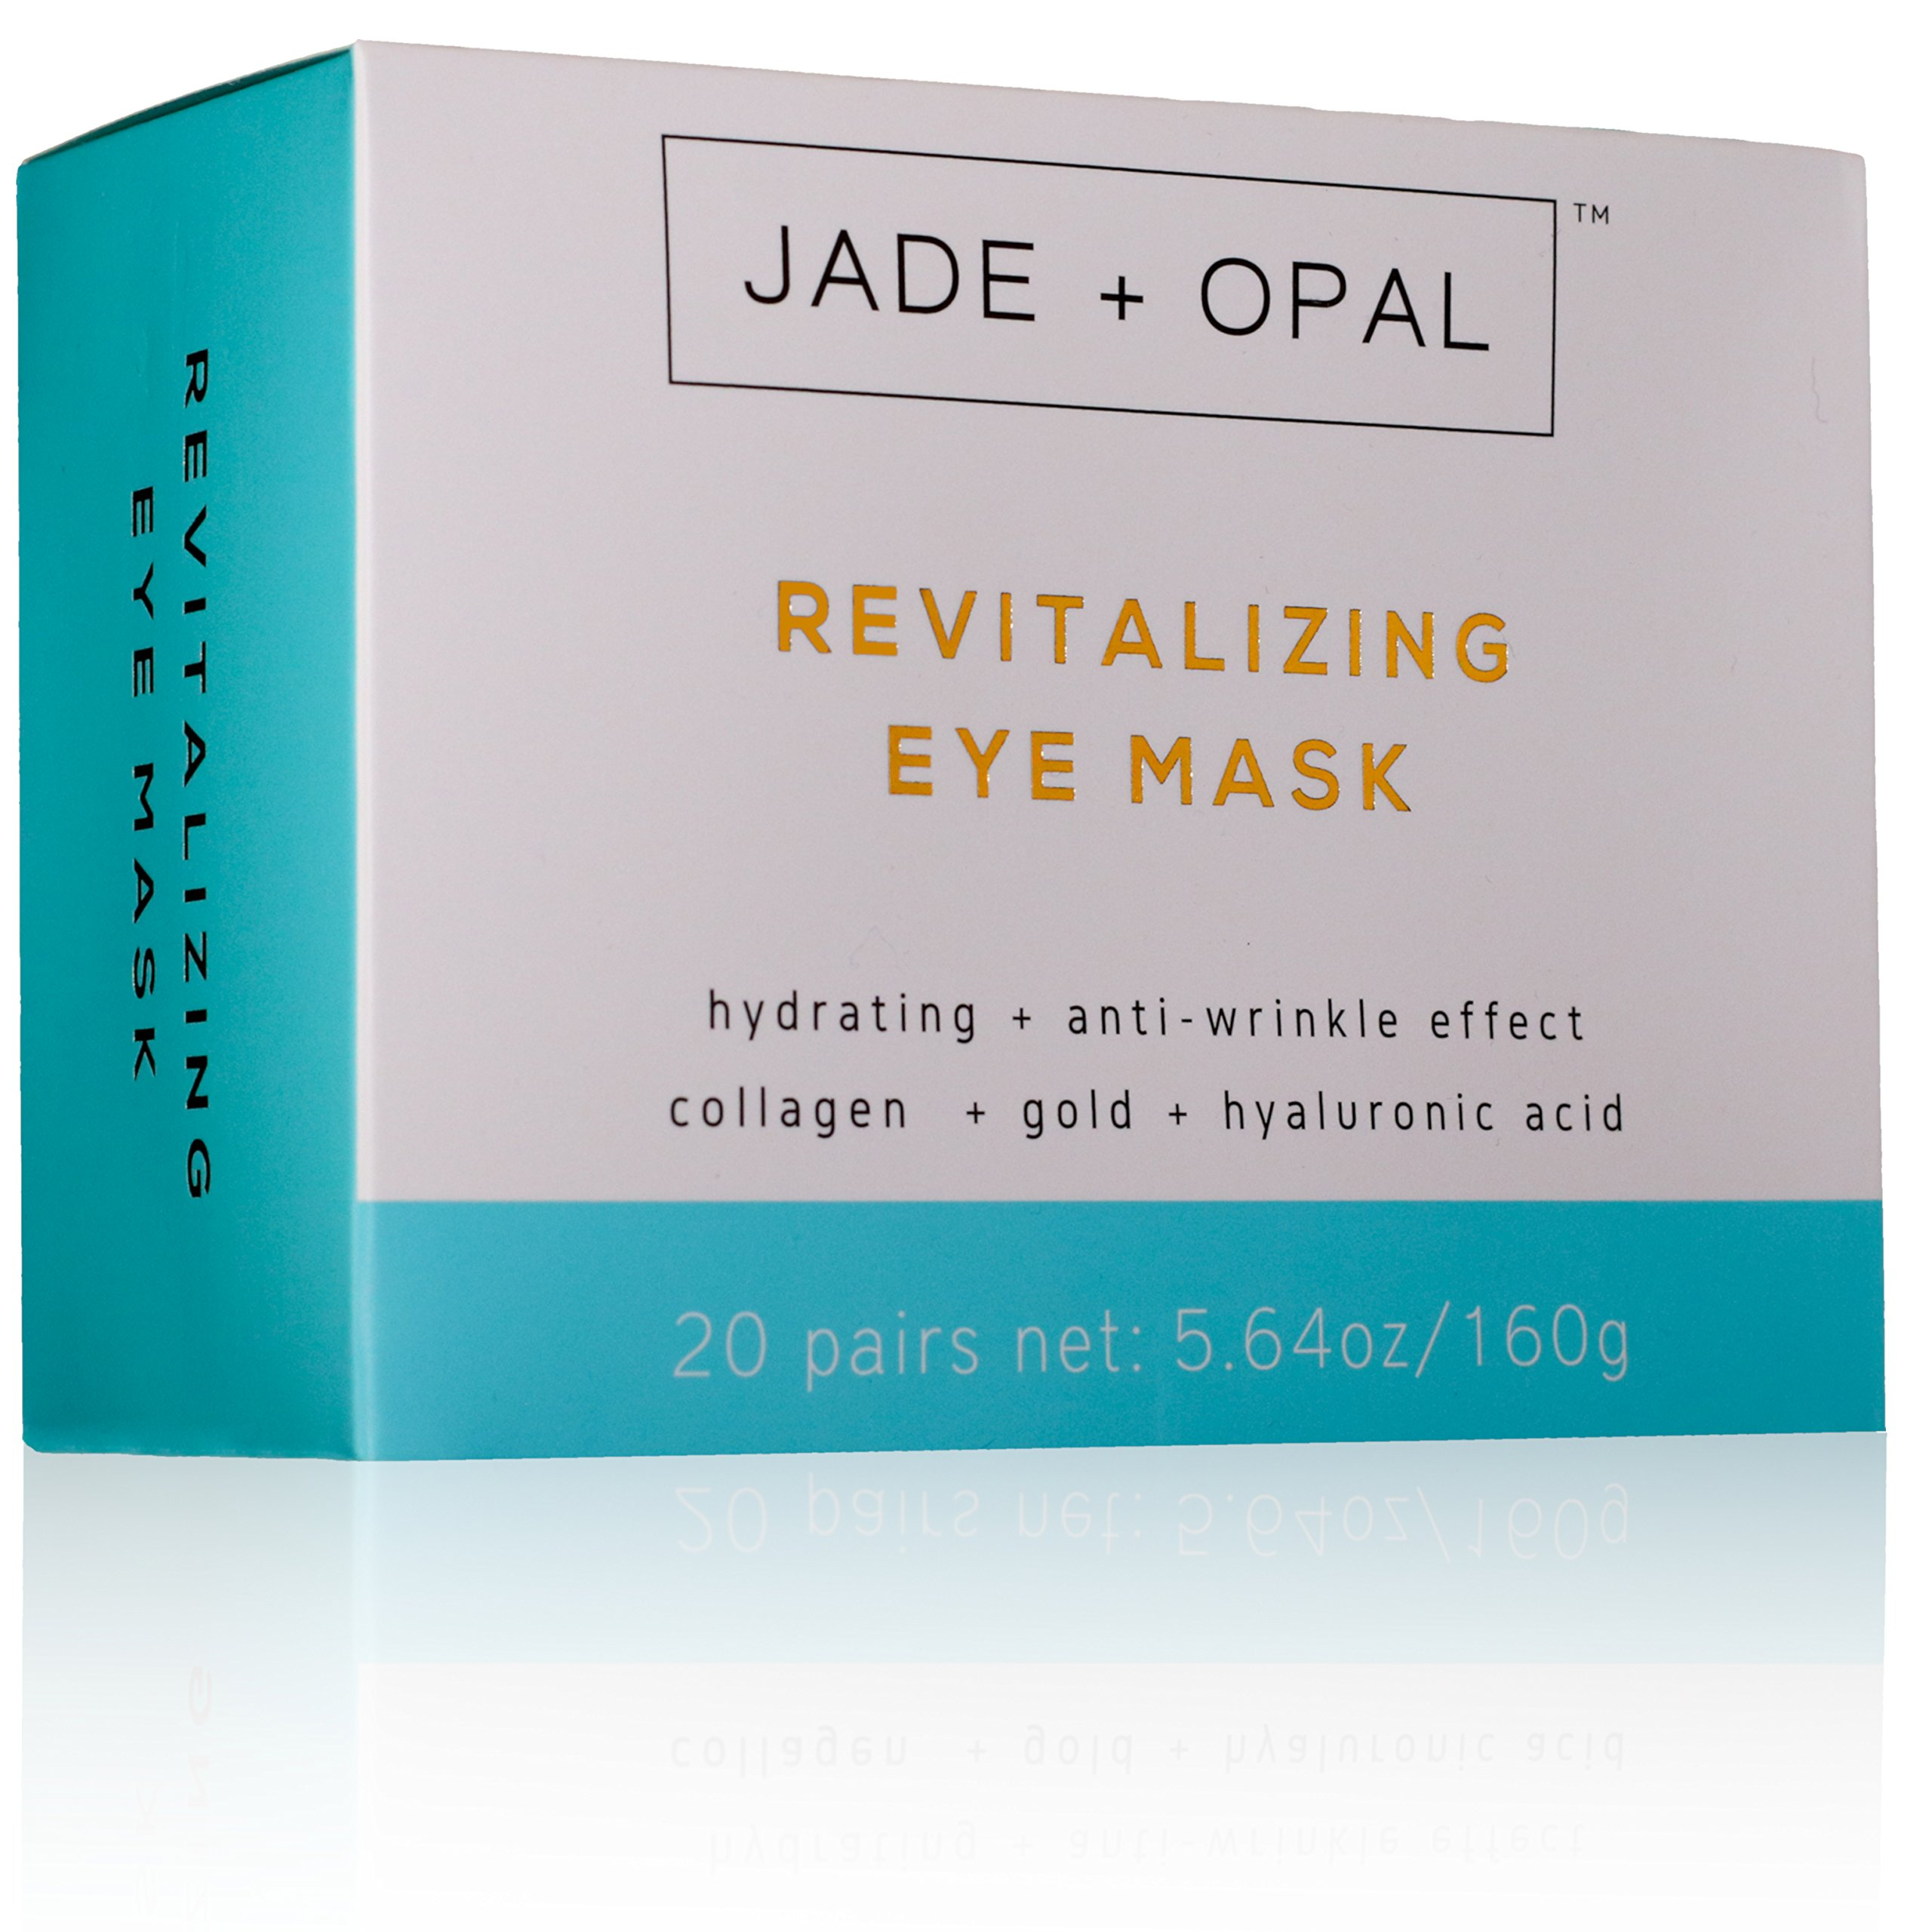 Jade and Opal Gold Collagen Revitalizing Eye Mask, 20 Pairs (Pack of 1) by Jade and Opal (Image #6)